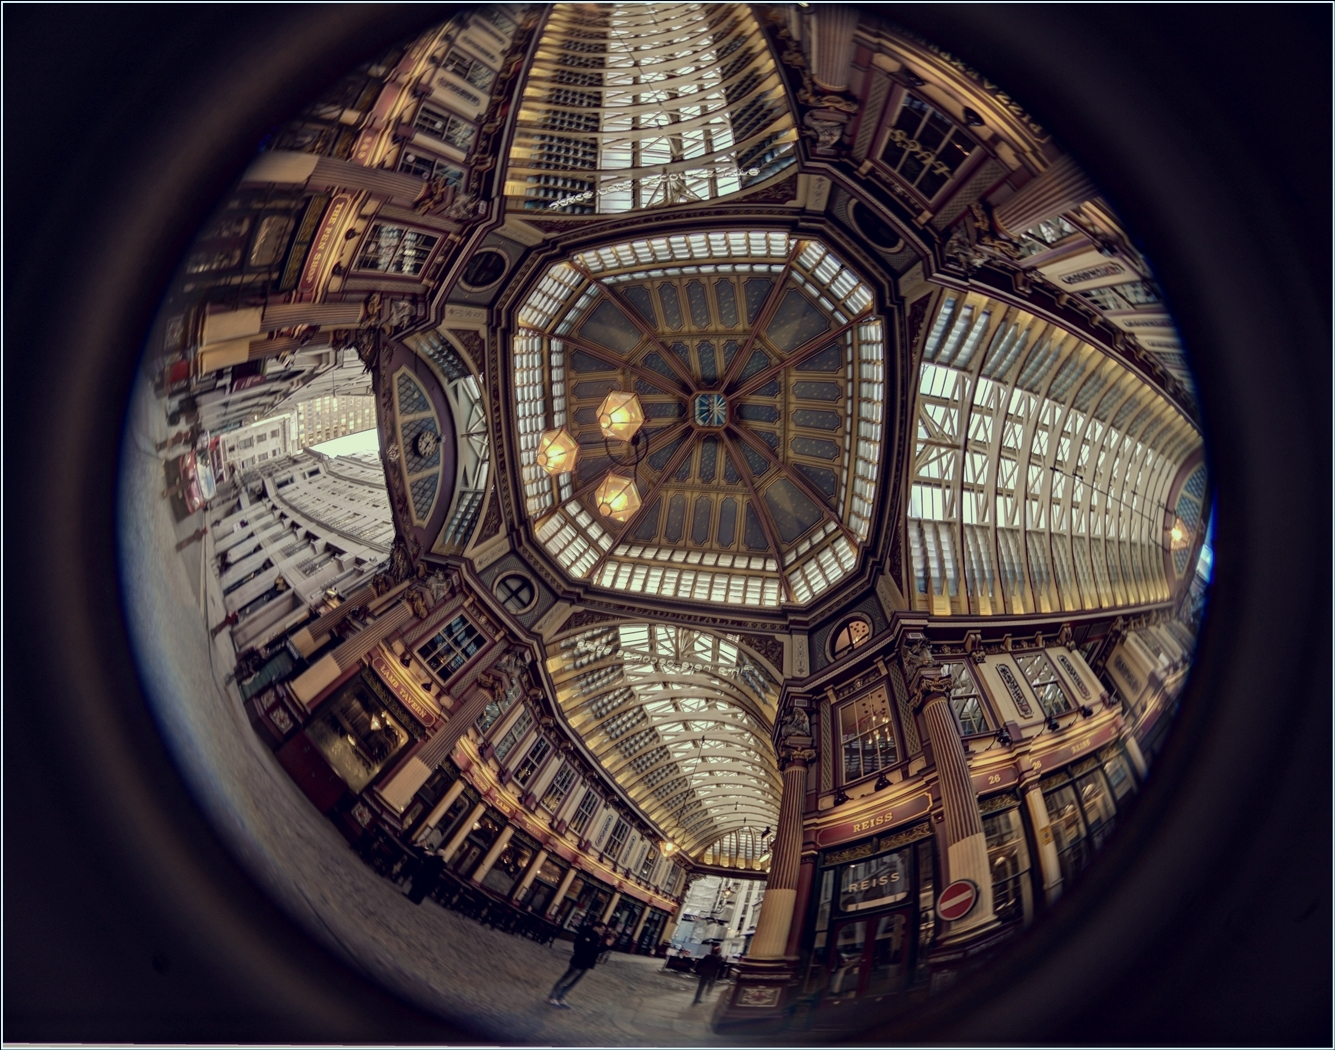 LEADENHALL CEILING by Rojer Weightman